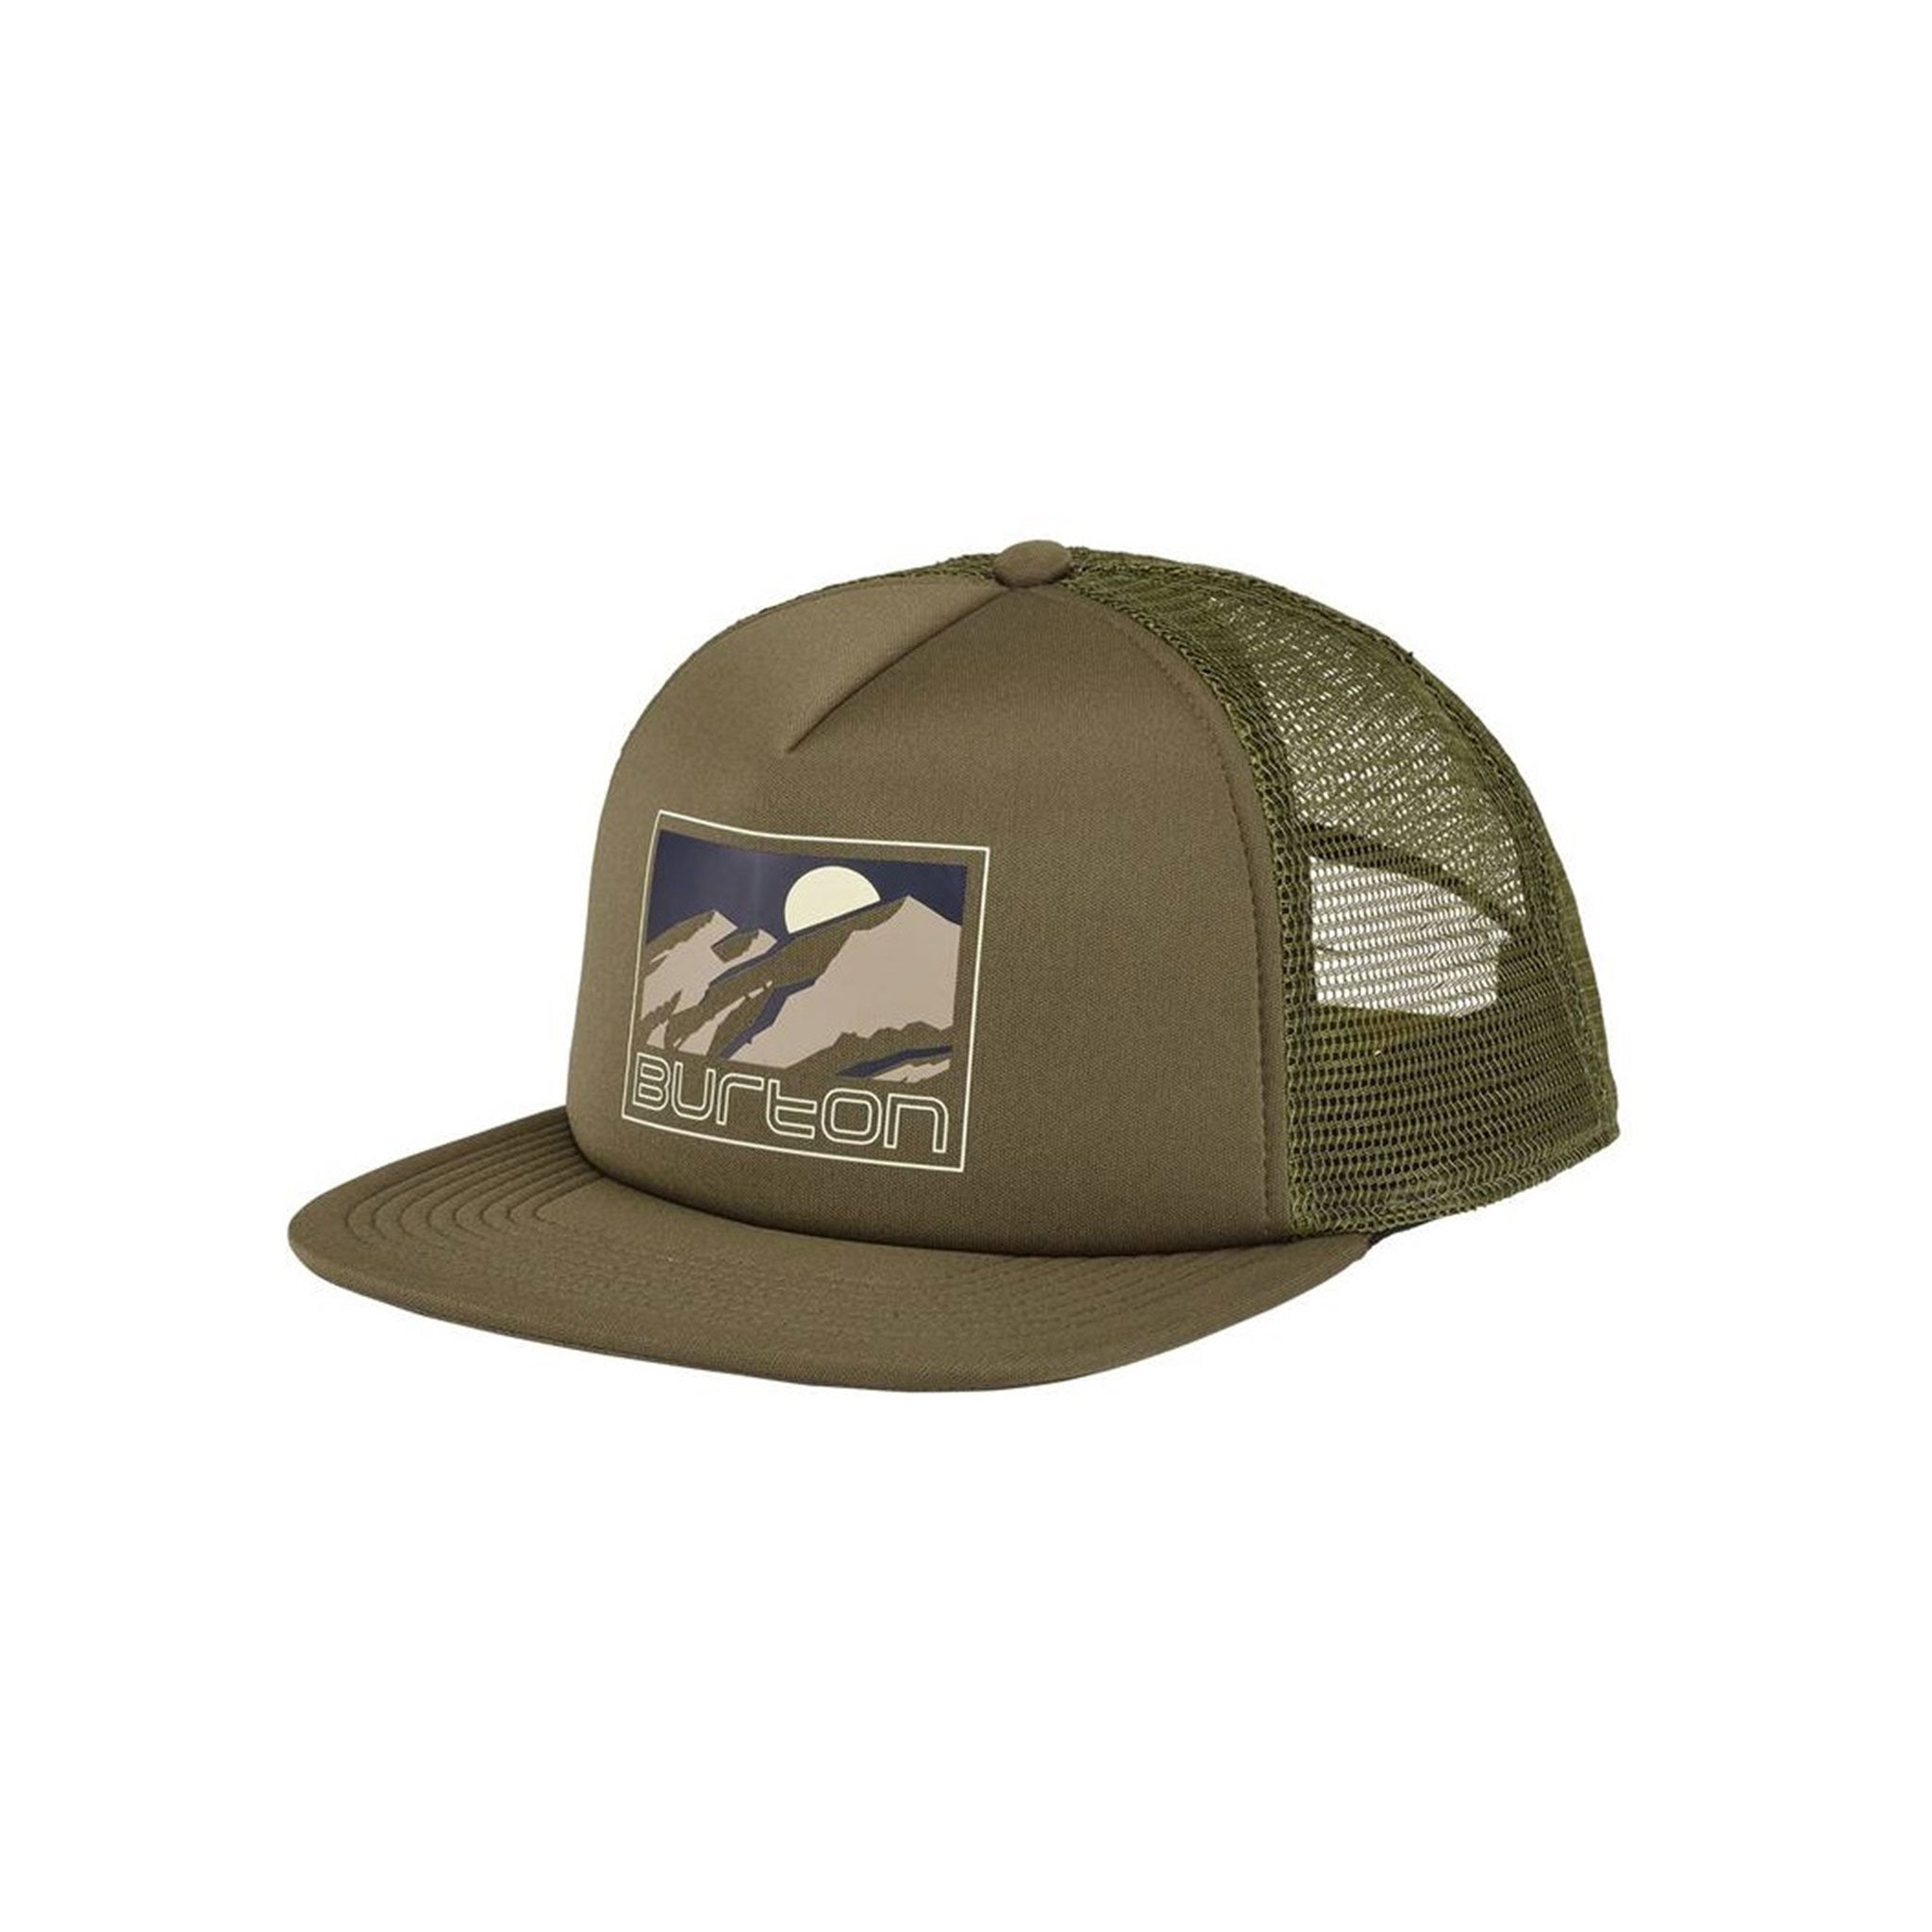 d51878b1 Men's Caps - Alpine Start Outfitters